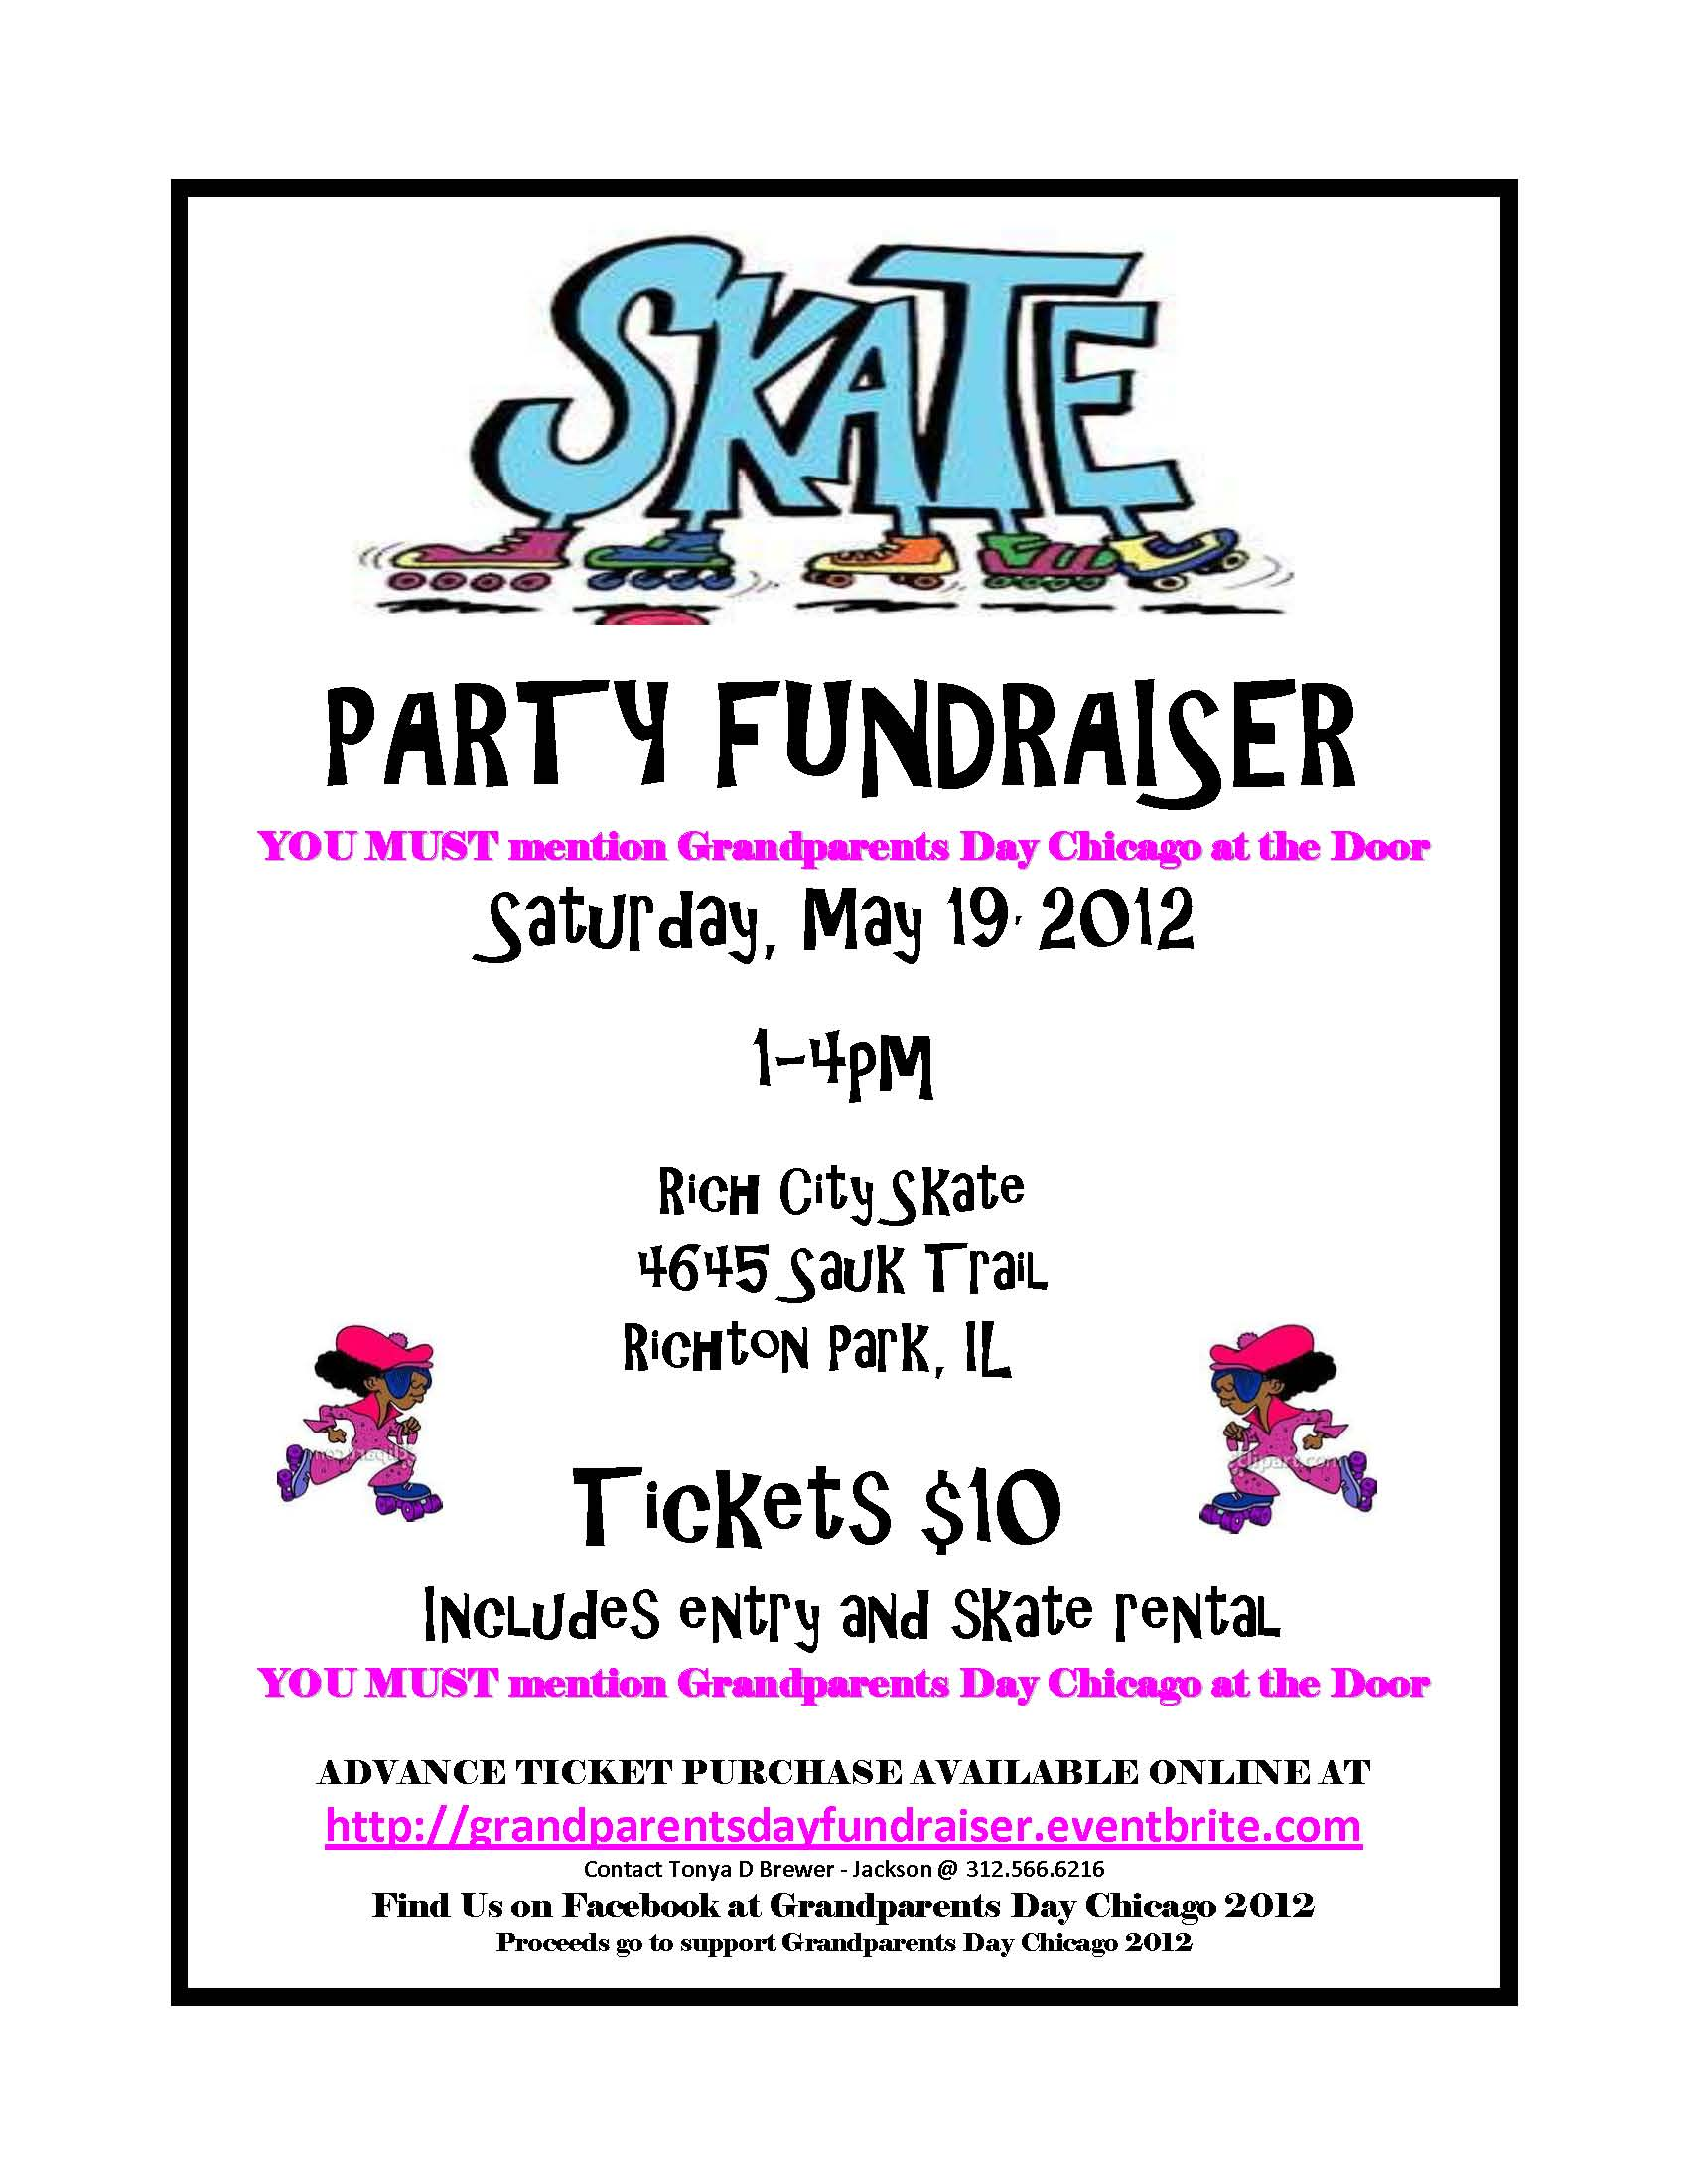 Skate Party Flyer http://www.realskatestories.com/grandparents-skate-party-fundraiser-may-19-2012/